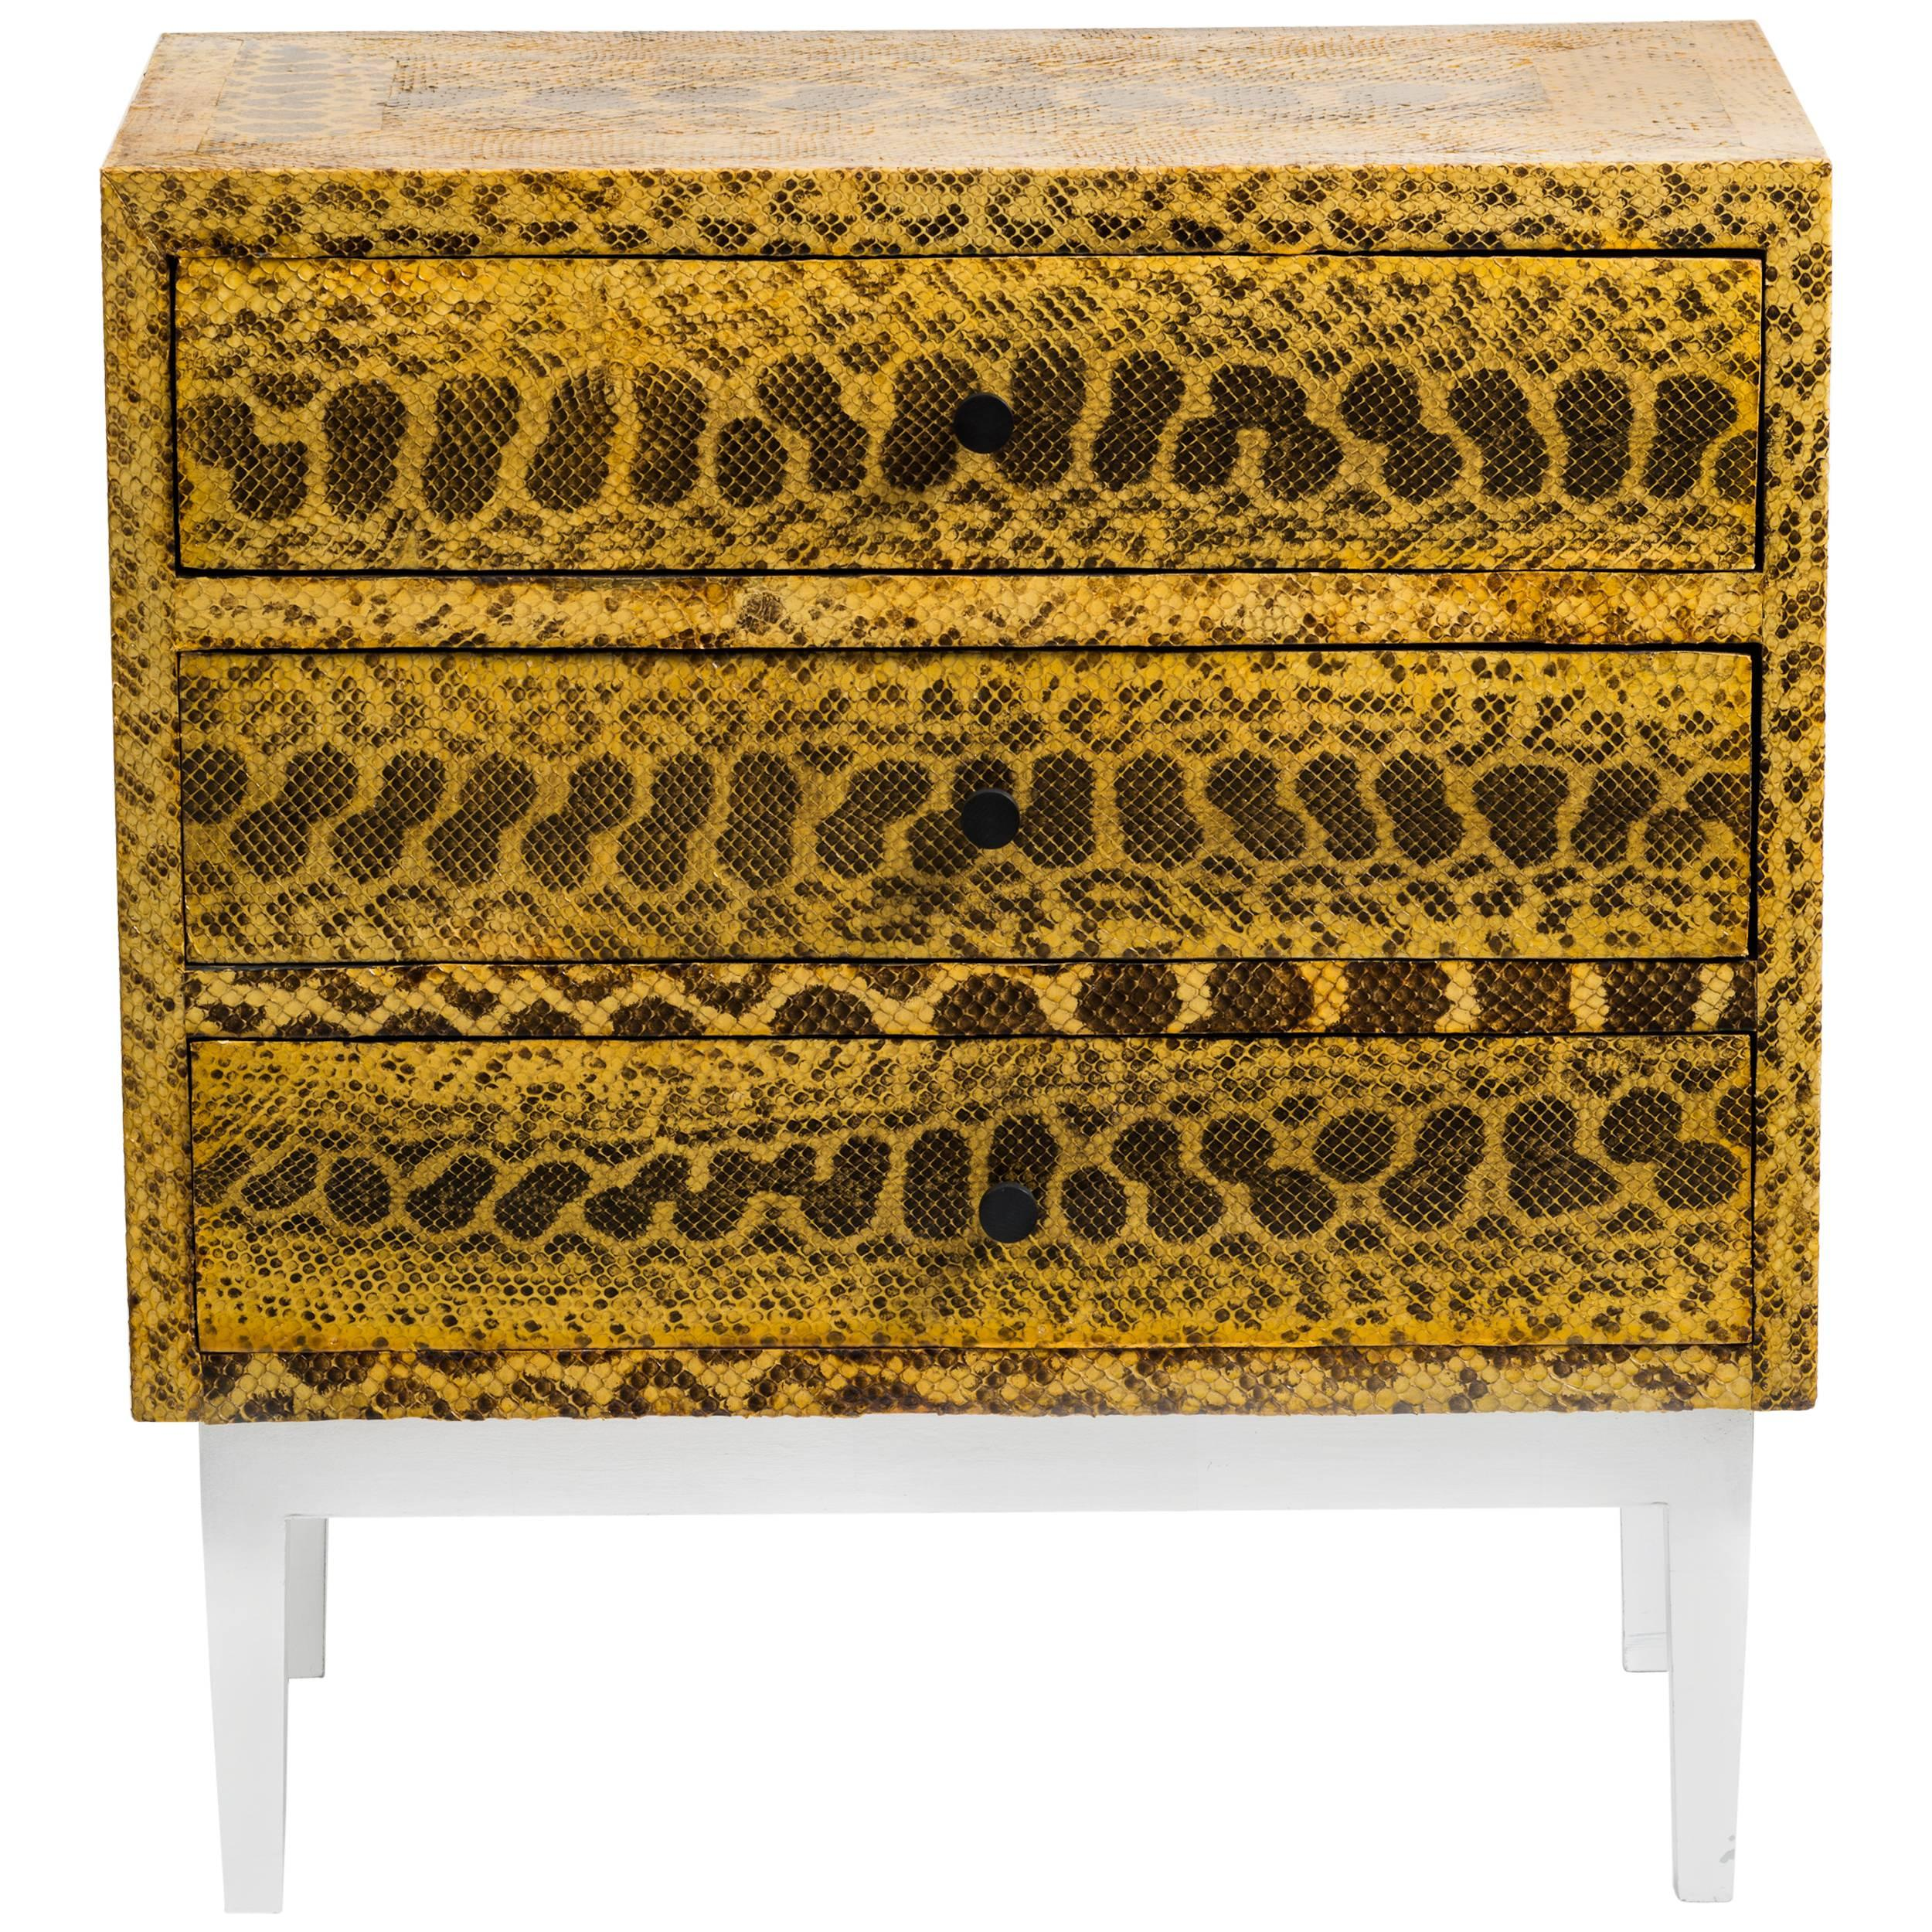 Snakeskin Chest of Drawers